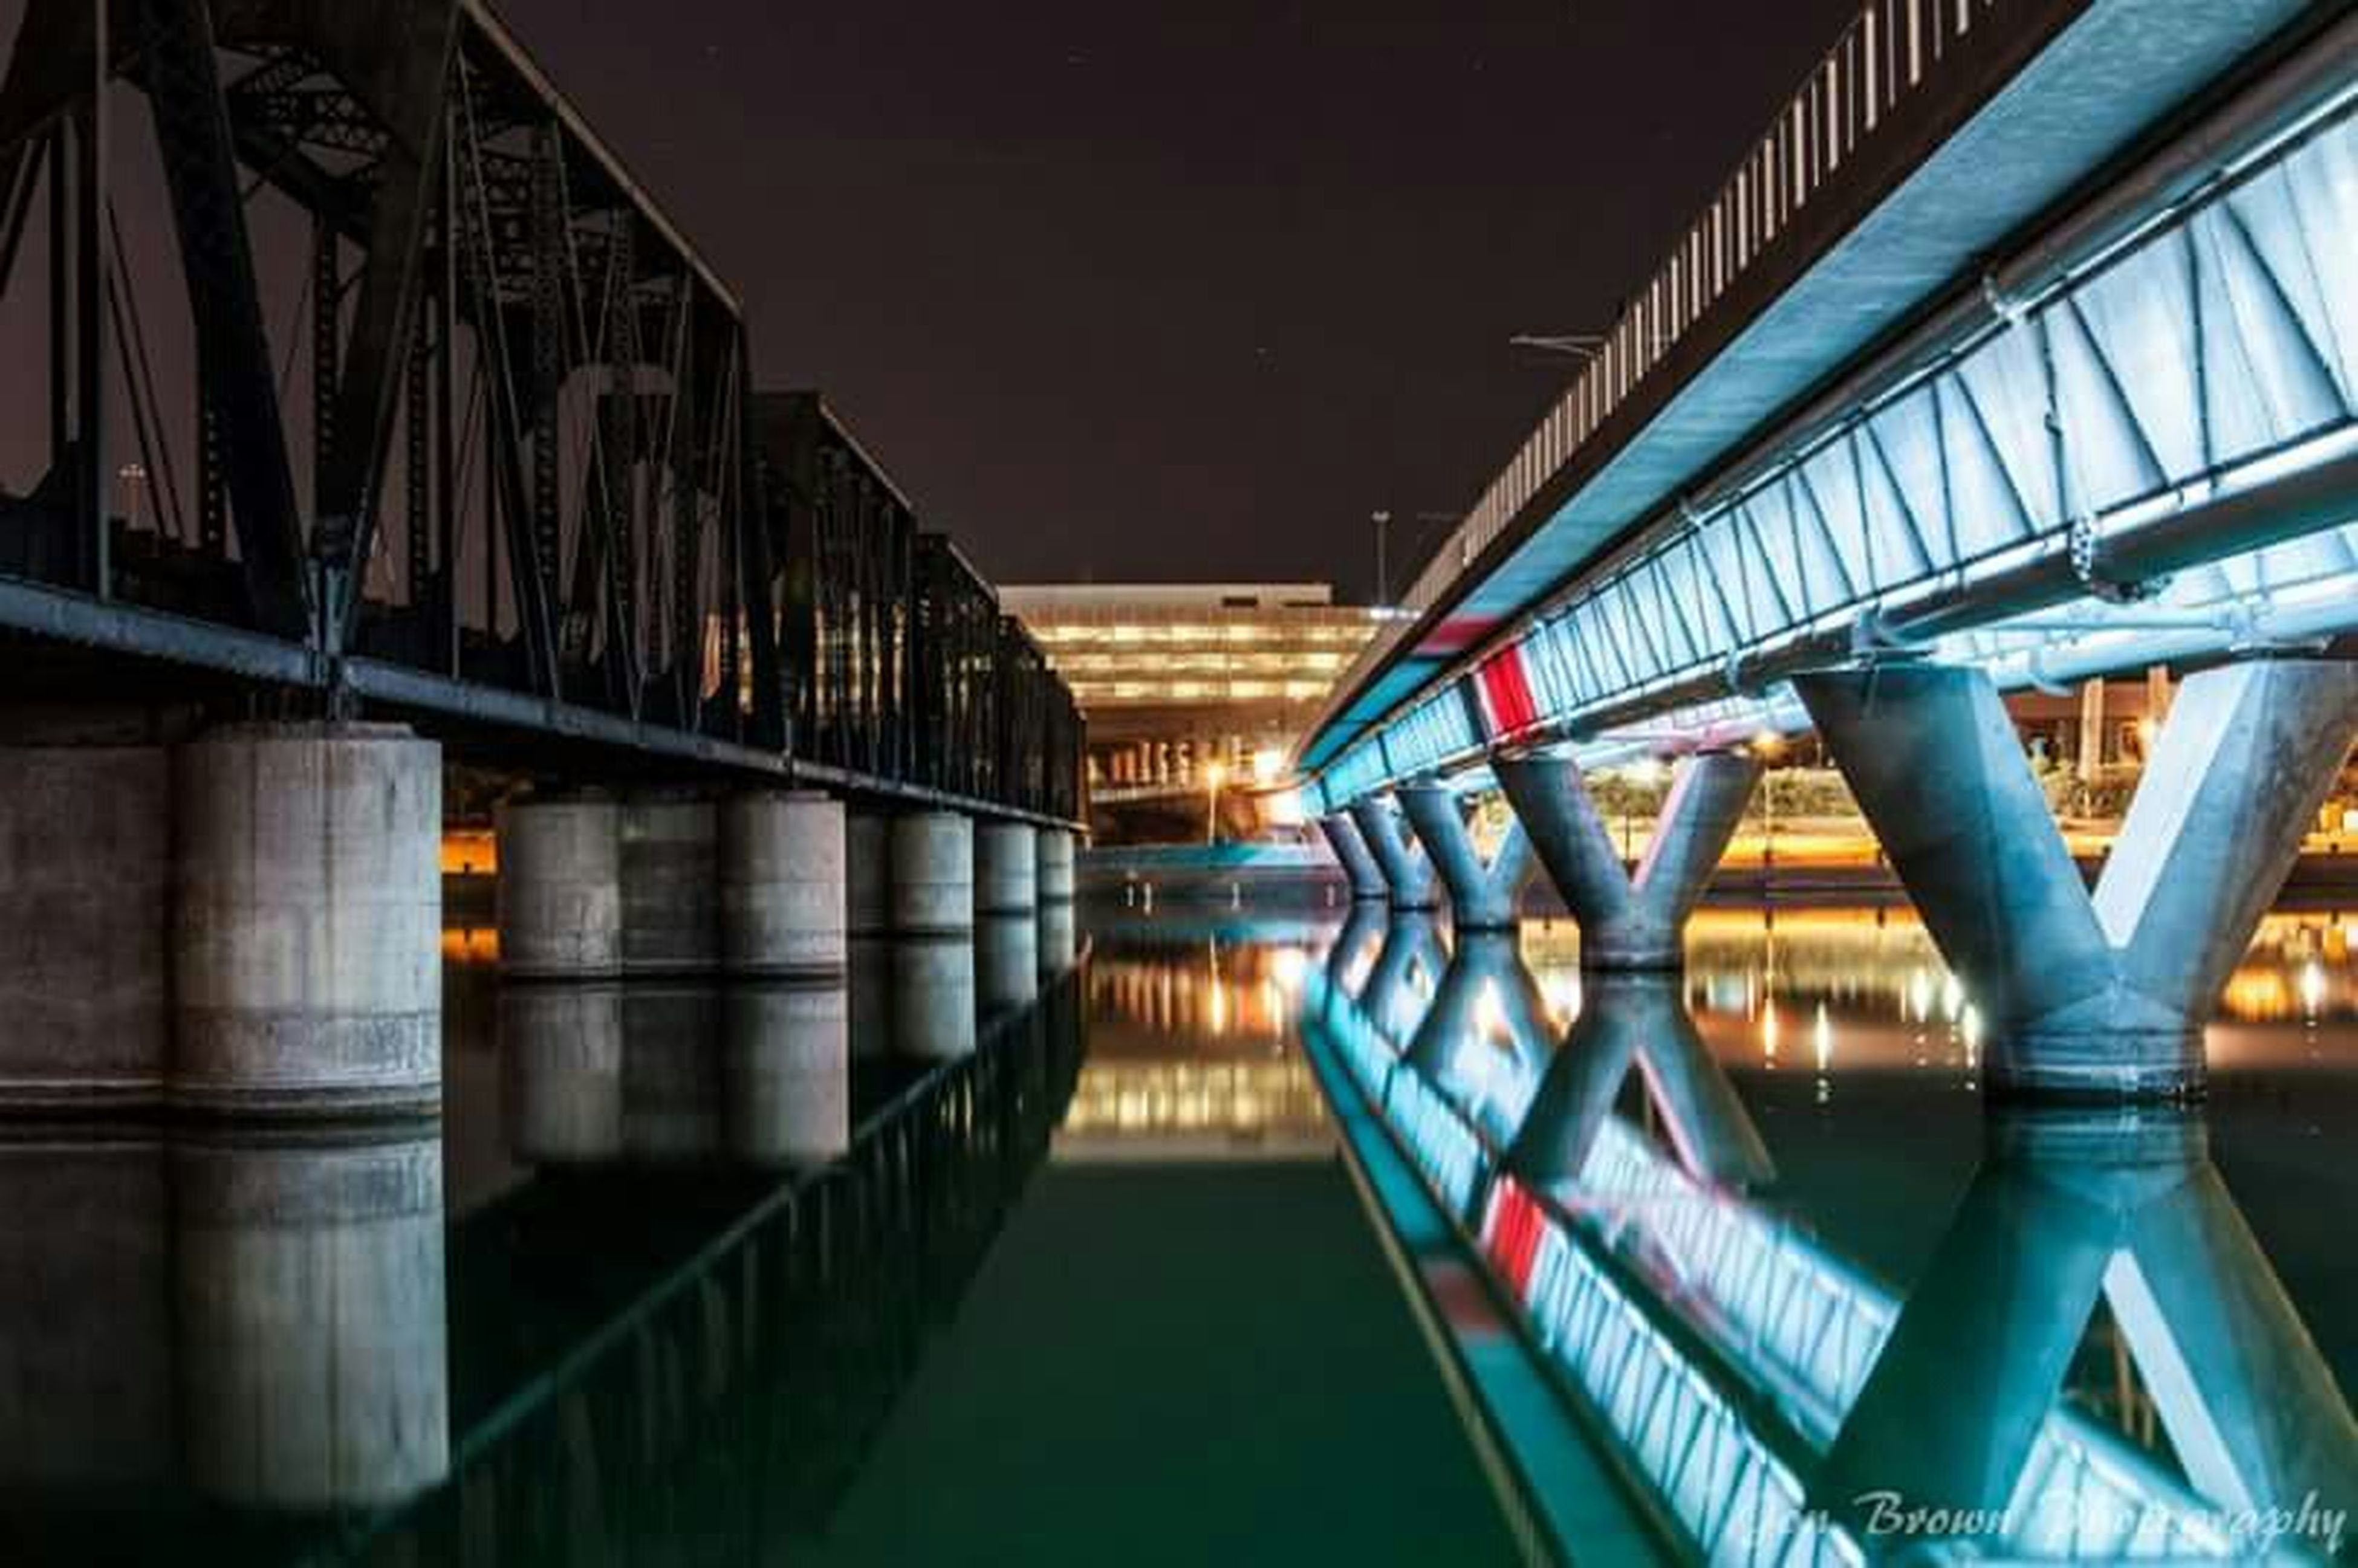 architecture, built structure, bridge - man made structure, connection, the way forward, indoors, railing, diminishing perspective, illuminated, long, bridge, footbridge, engineering, ceiling, low angle view, vanishing point, narrow, empty, reflection, no people